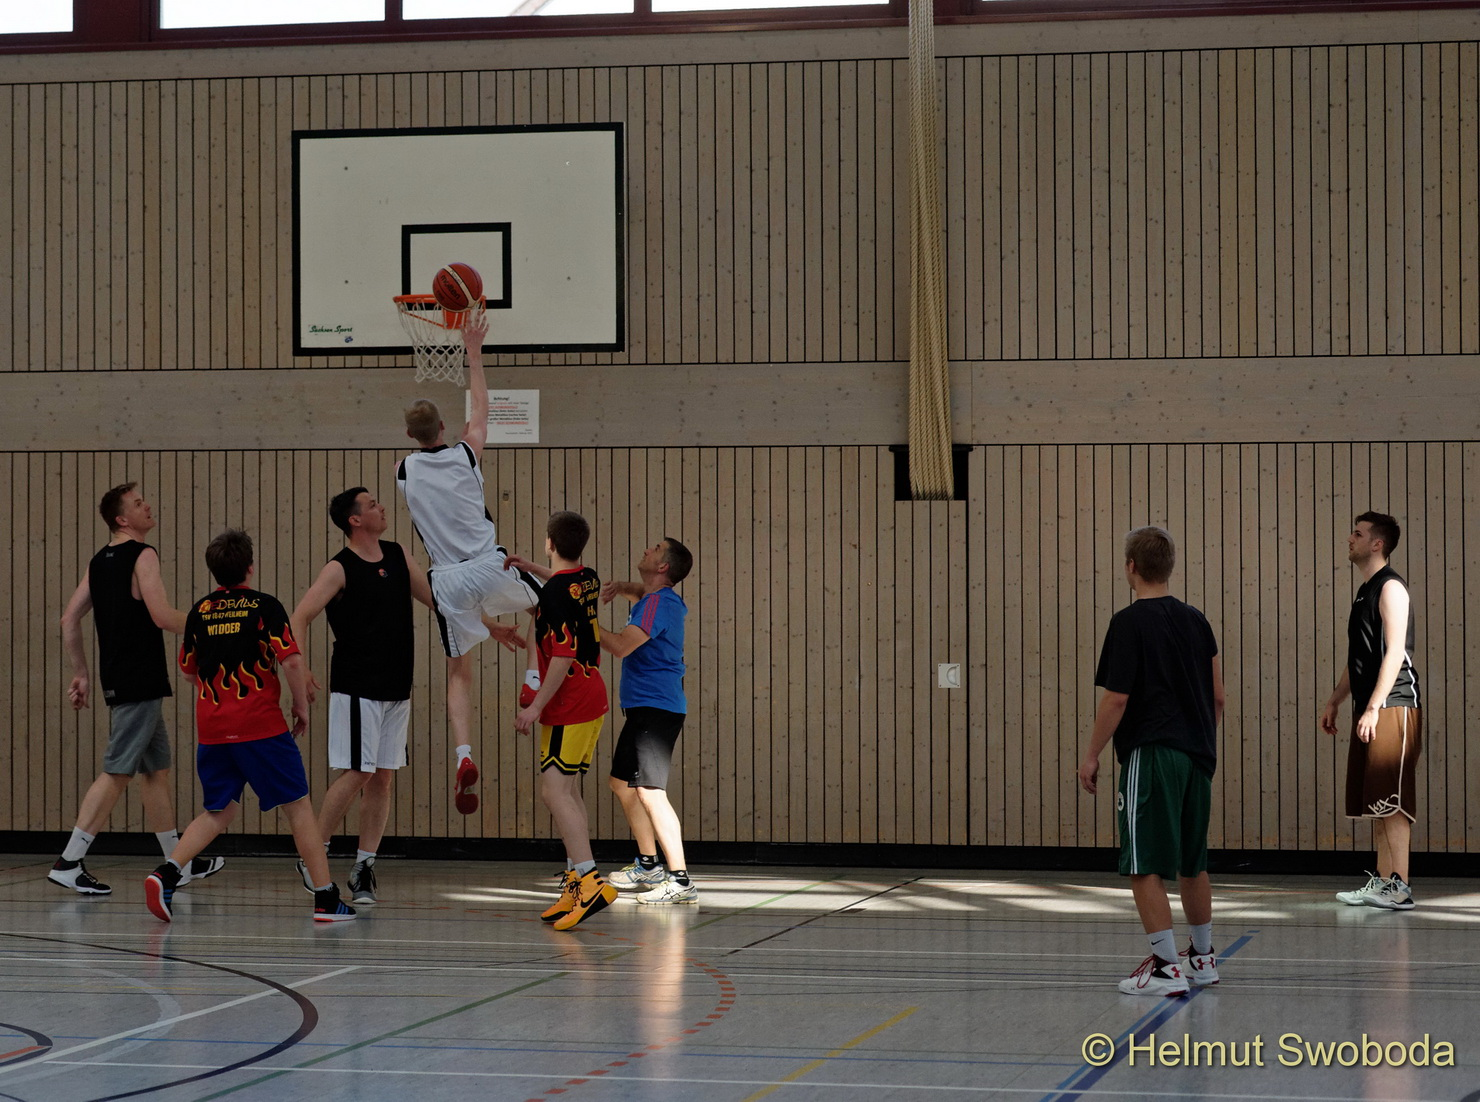 d170402-160424400-100-basketball_weilheim-mixed-turnier_33813697825_o